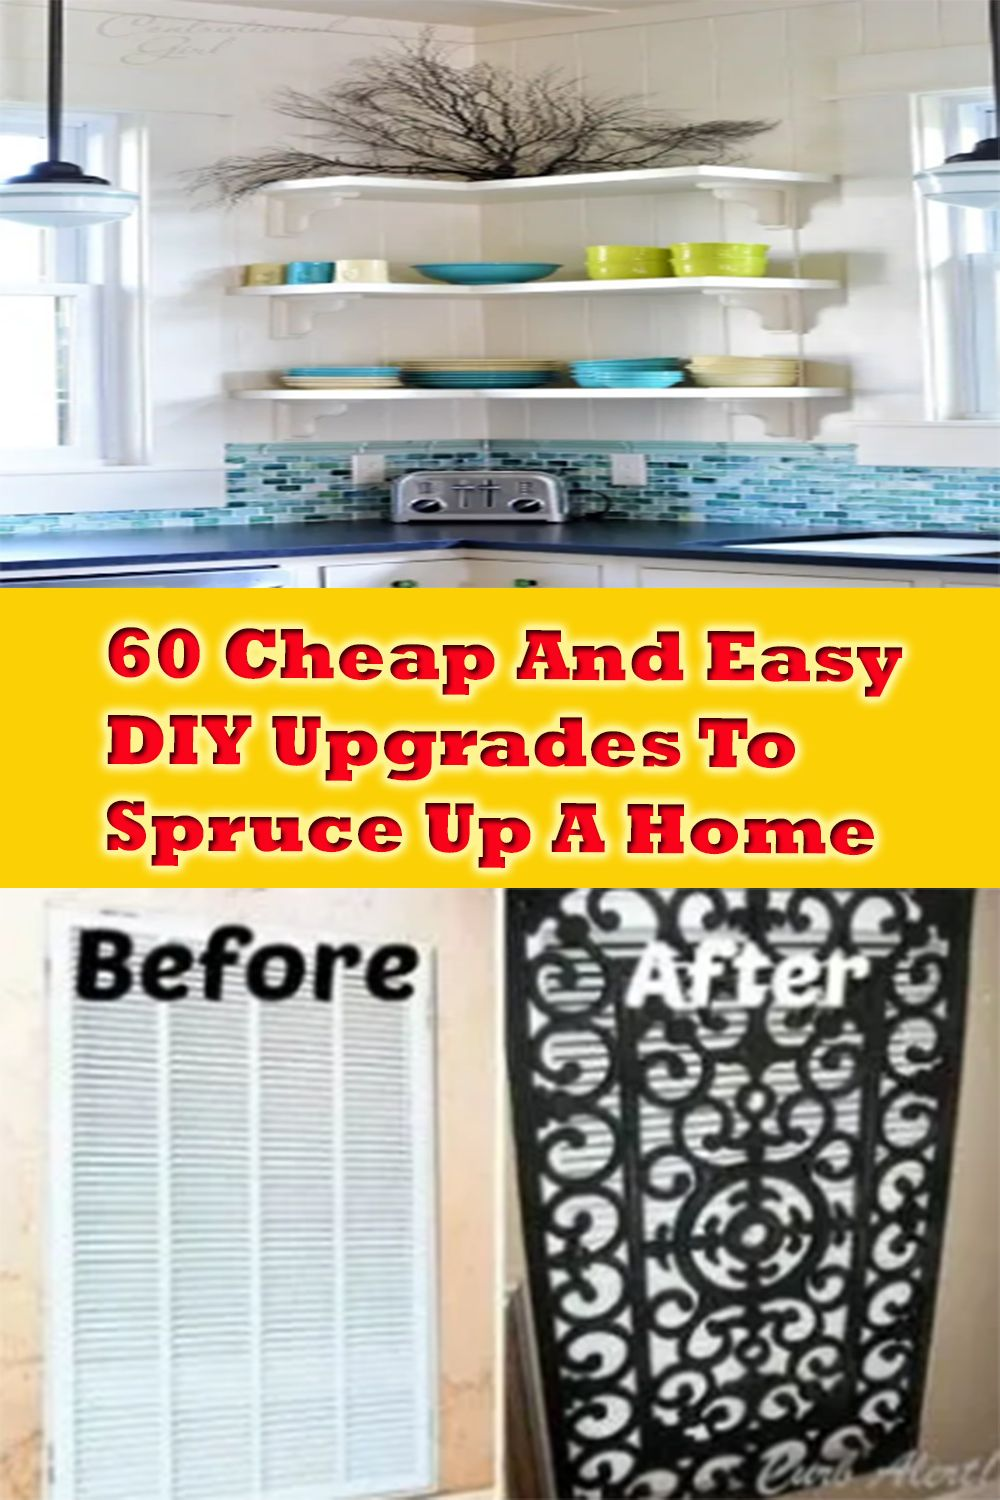 60 Cheap And Easy DIY Upgrades To Spruce Up A Home